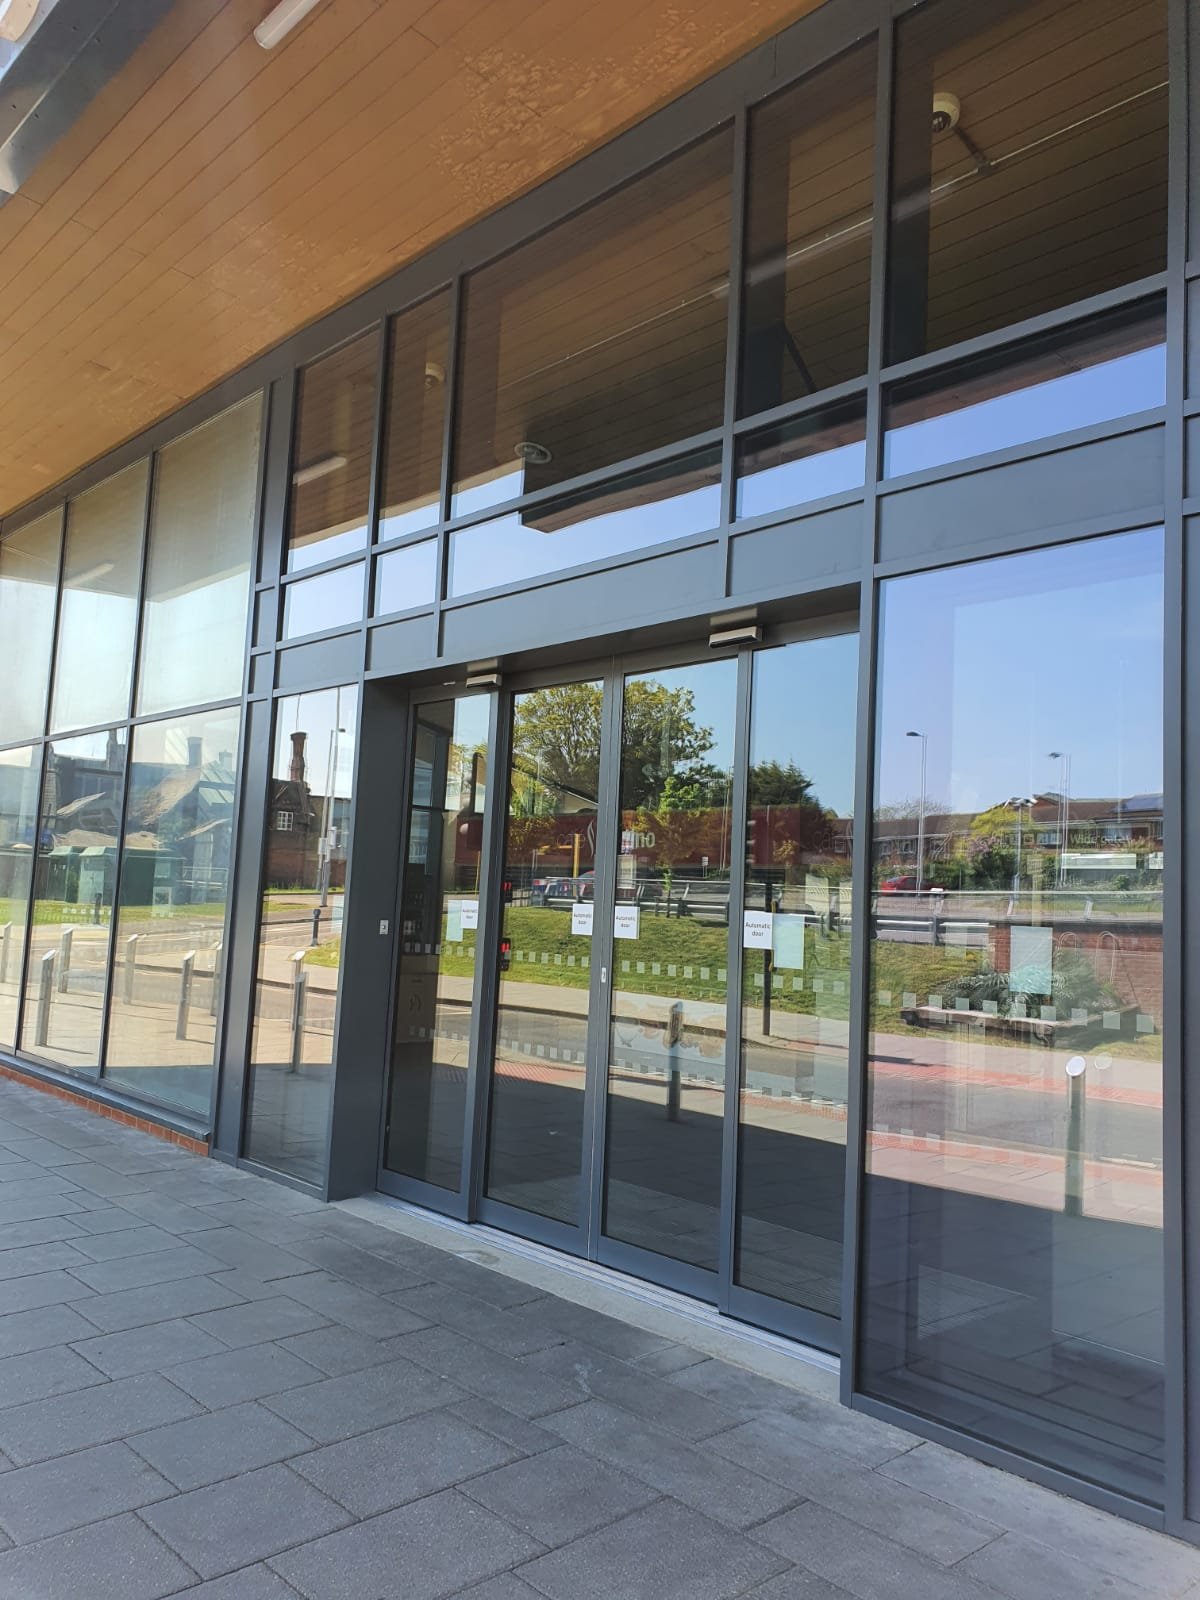 Curtain wall and auto doors at Wokingham train station